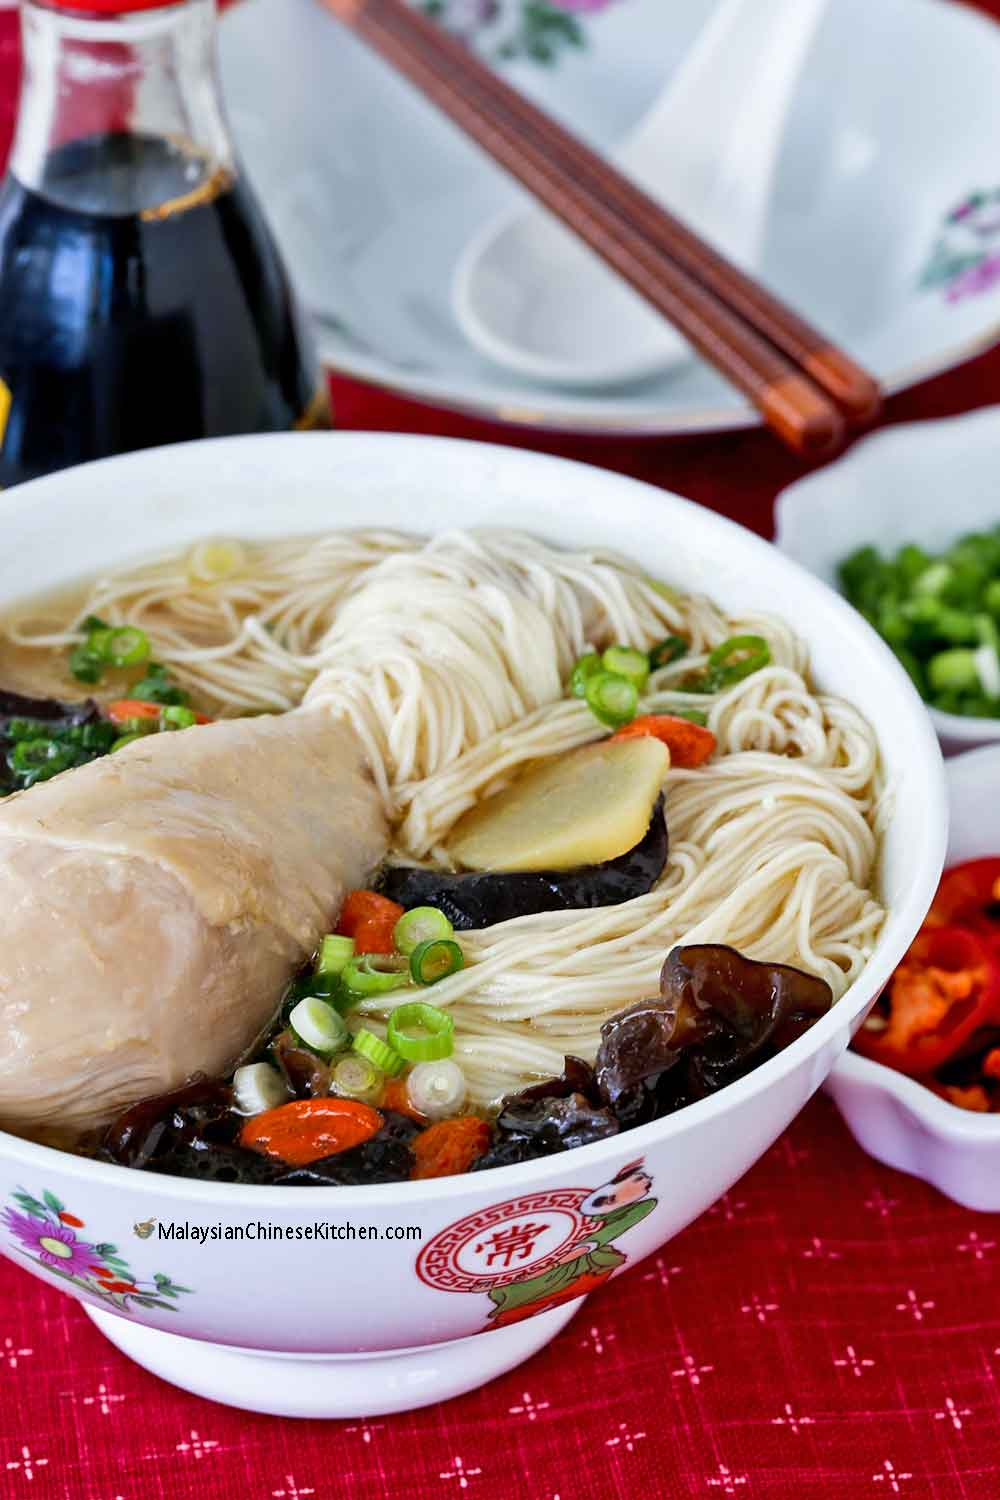 Ginger Wine Chicken Mee Suah suitable for postpartum confinement.